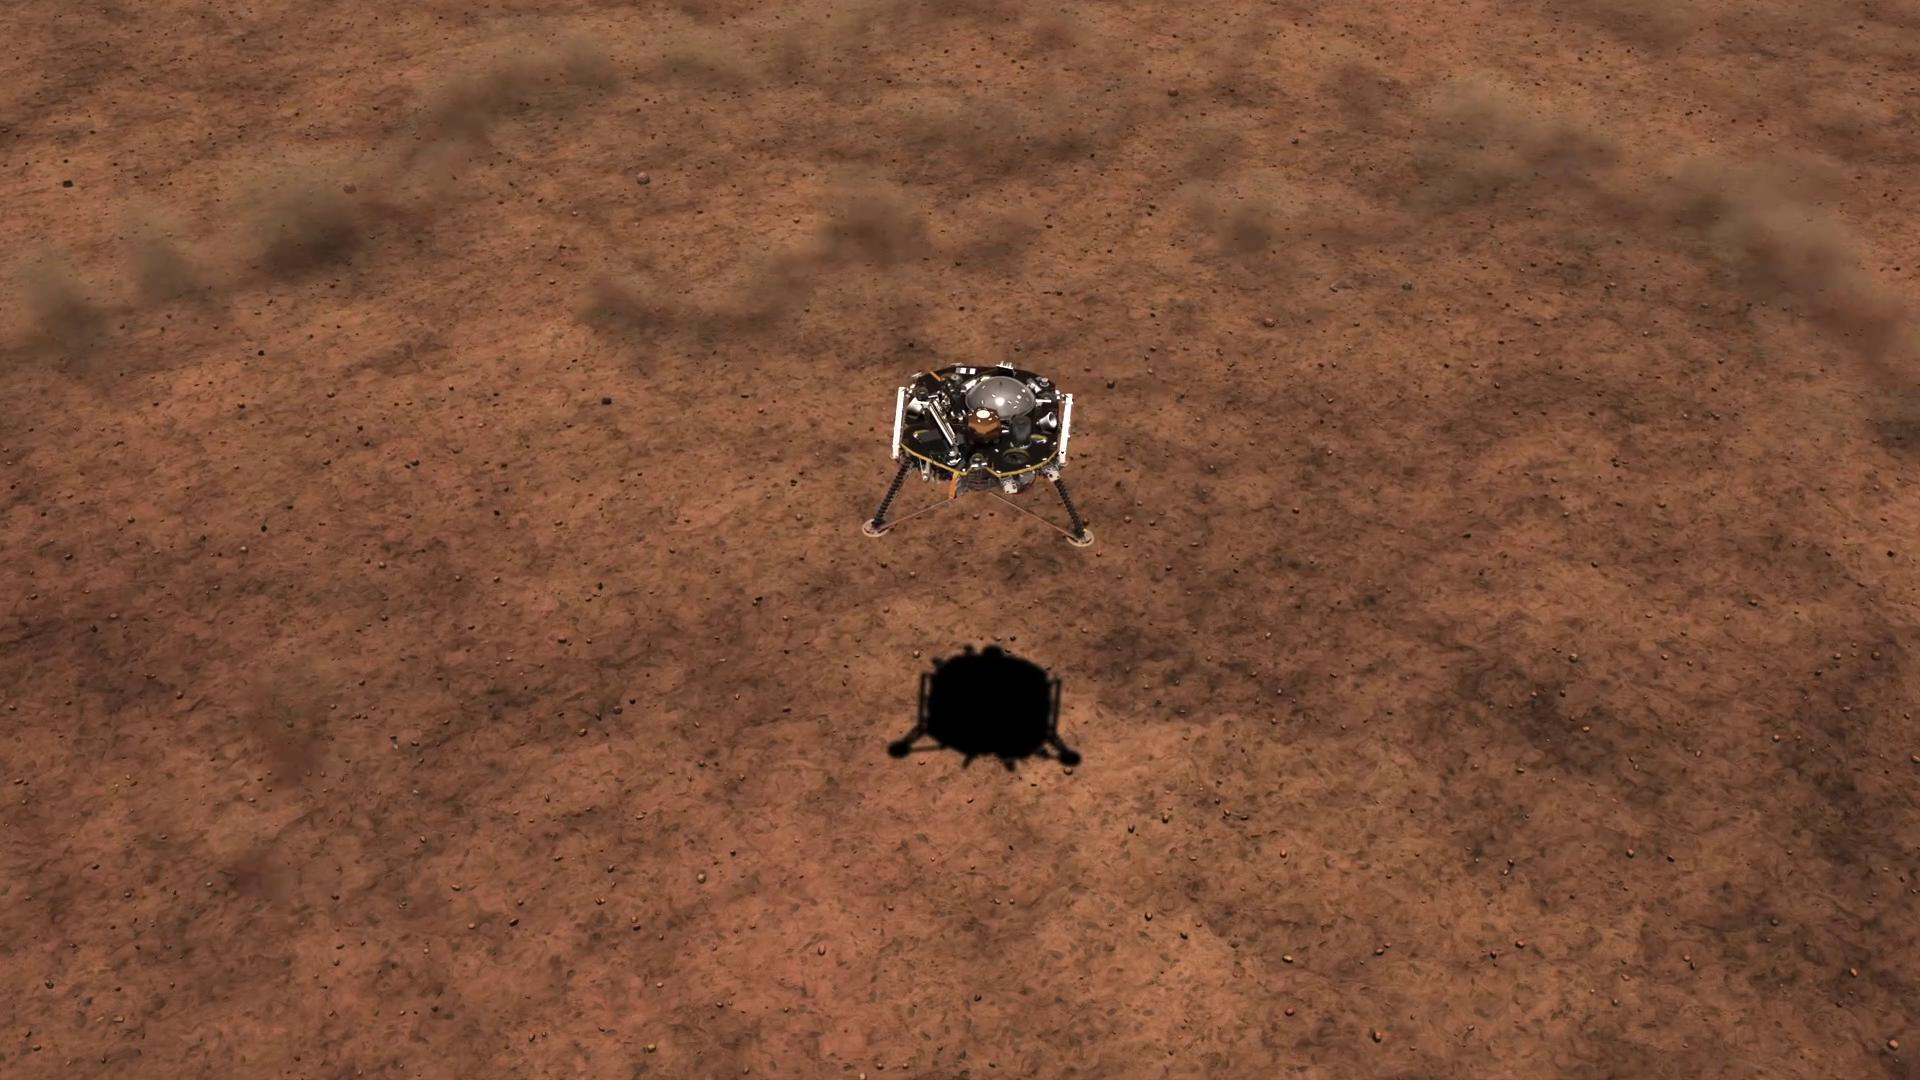 slide 3 - his artist's concept depicts the smooth, flat ground that dominates InSight's landing ellipse in the Elysium Planitia region of Mars.